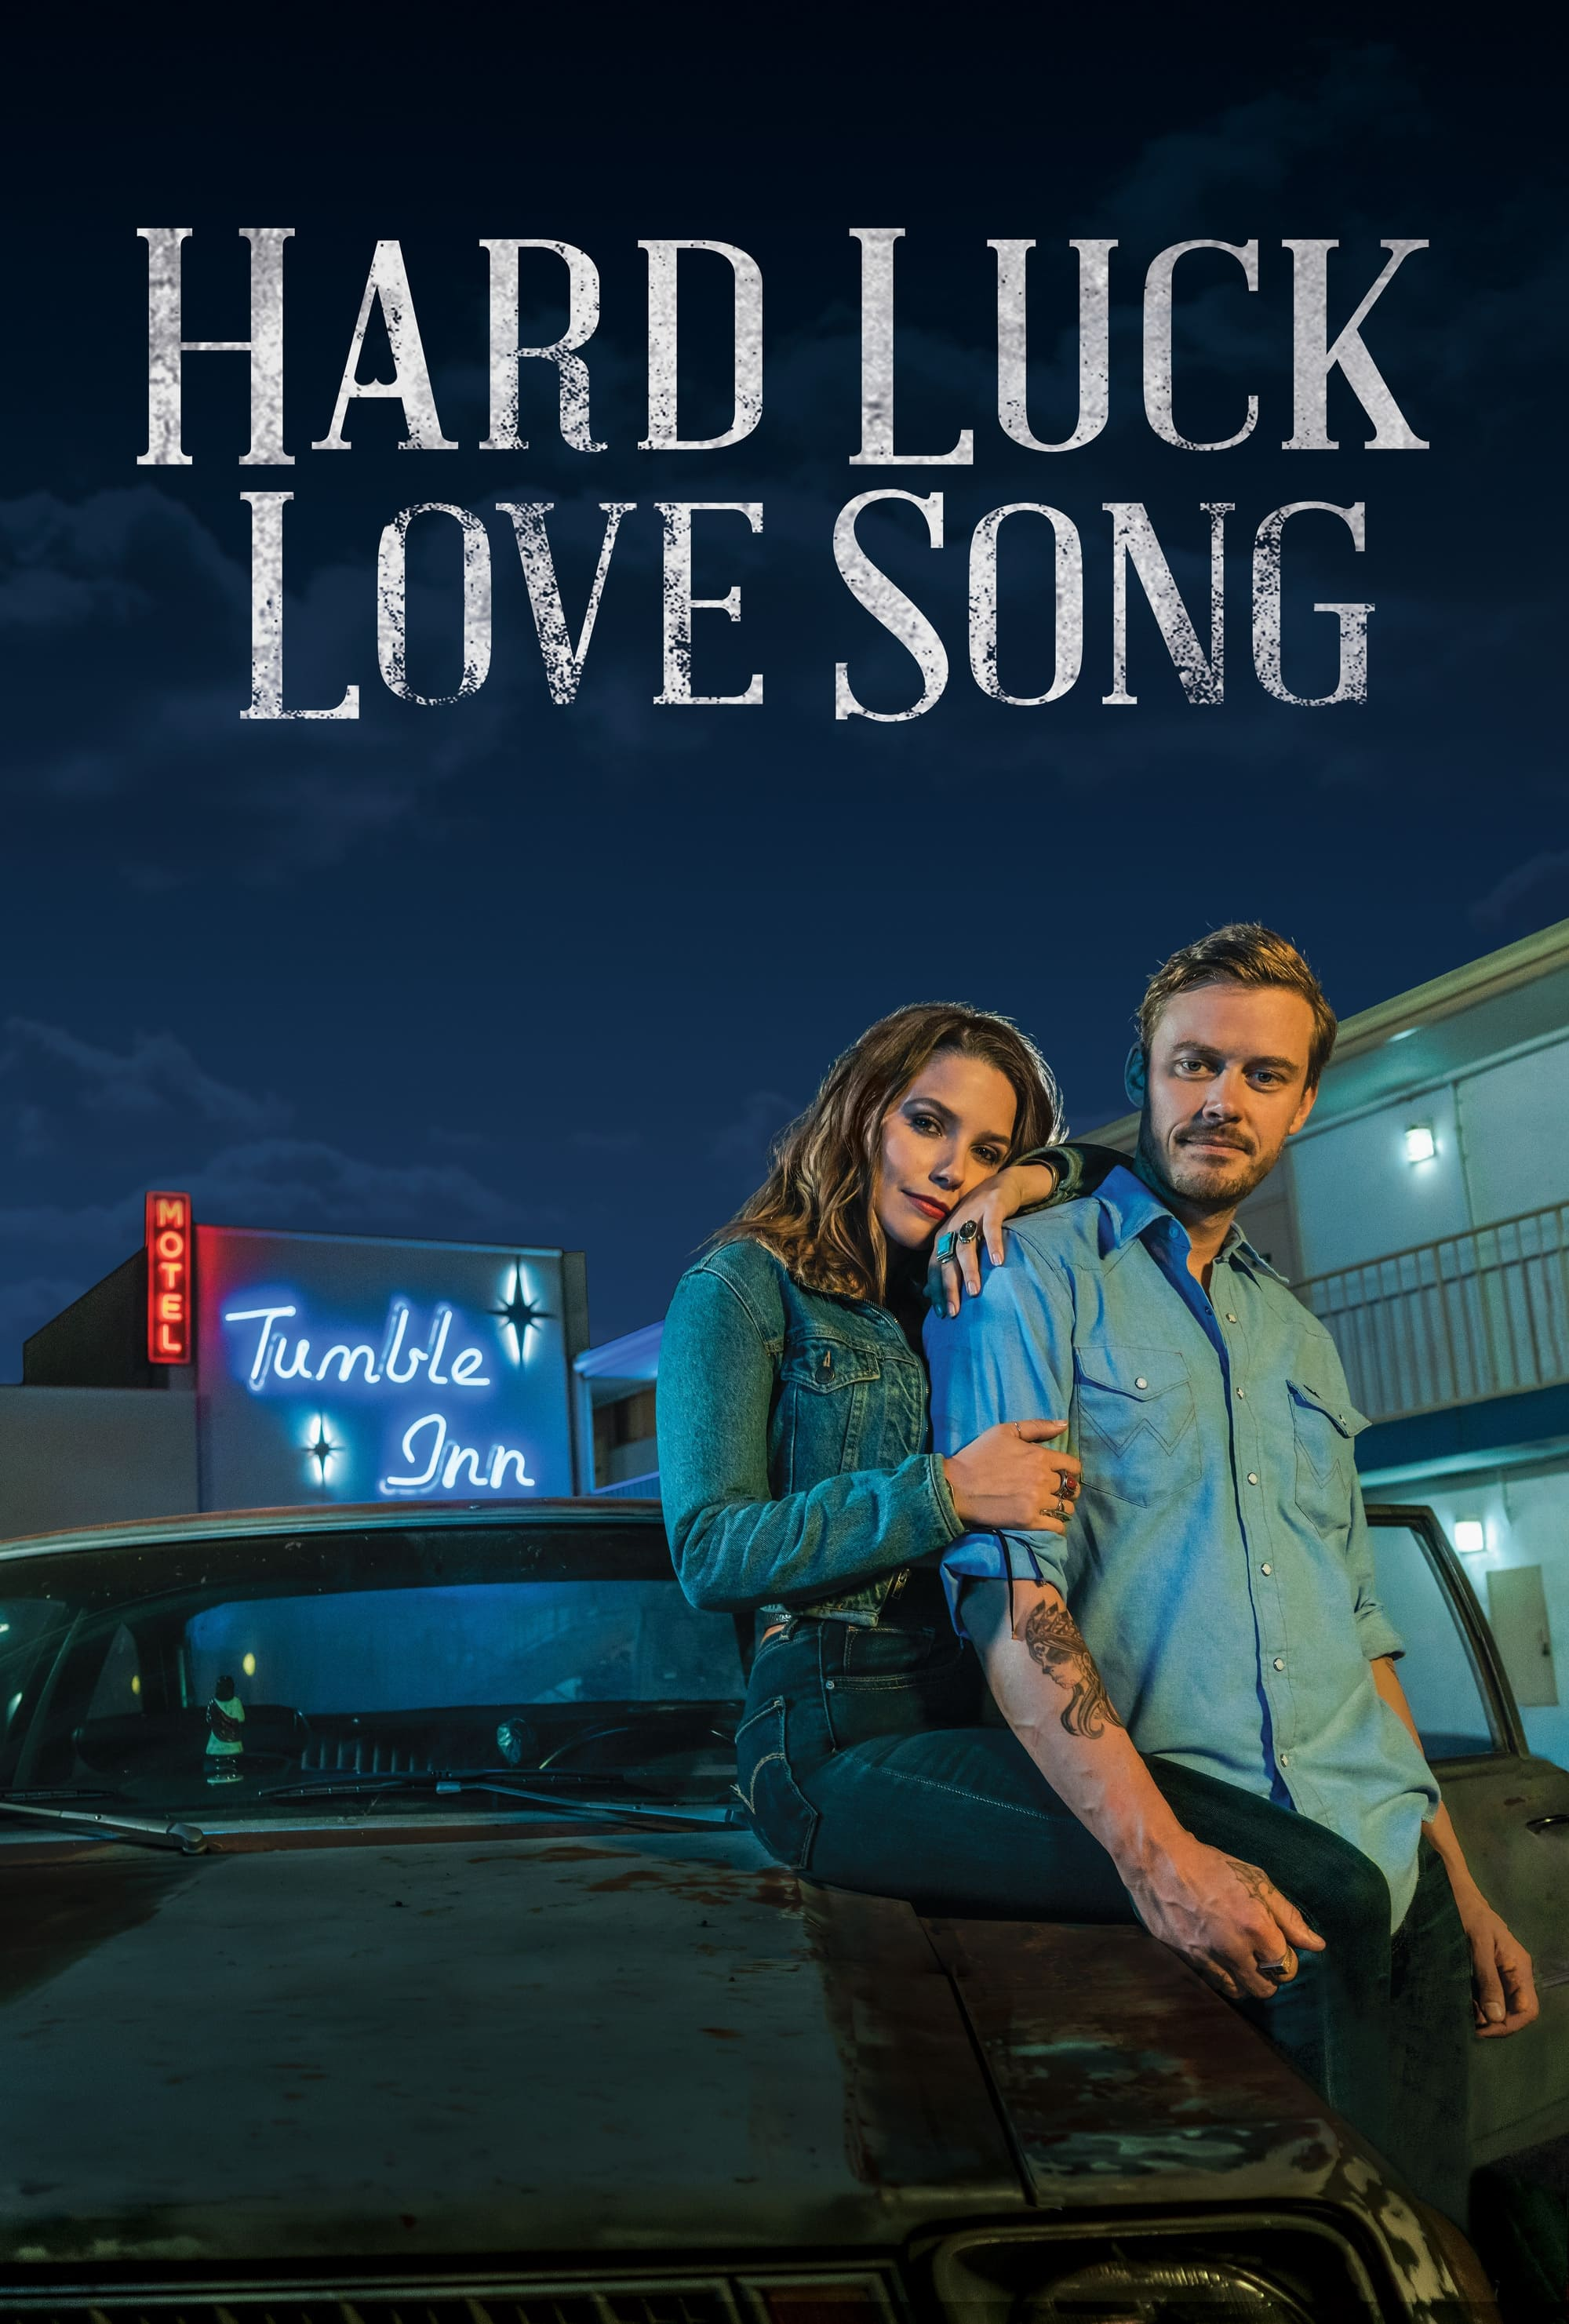 Hard Luck Love Song (2021) movie download